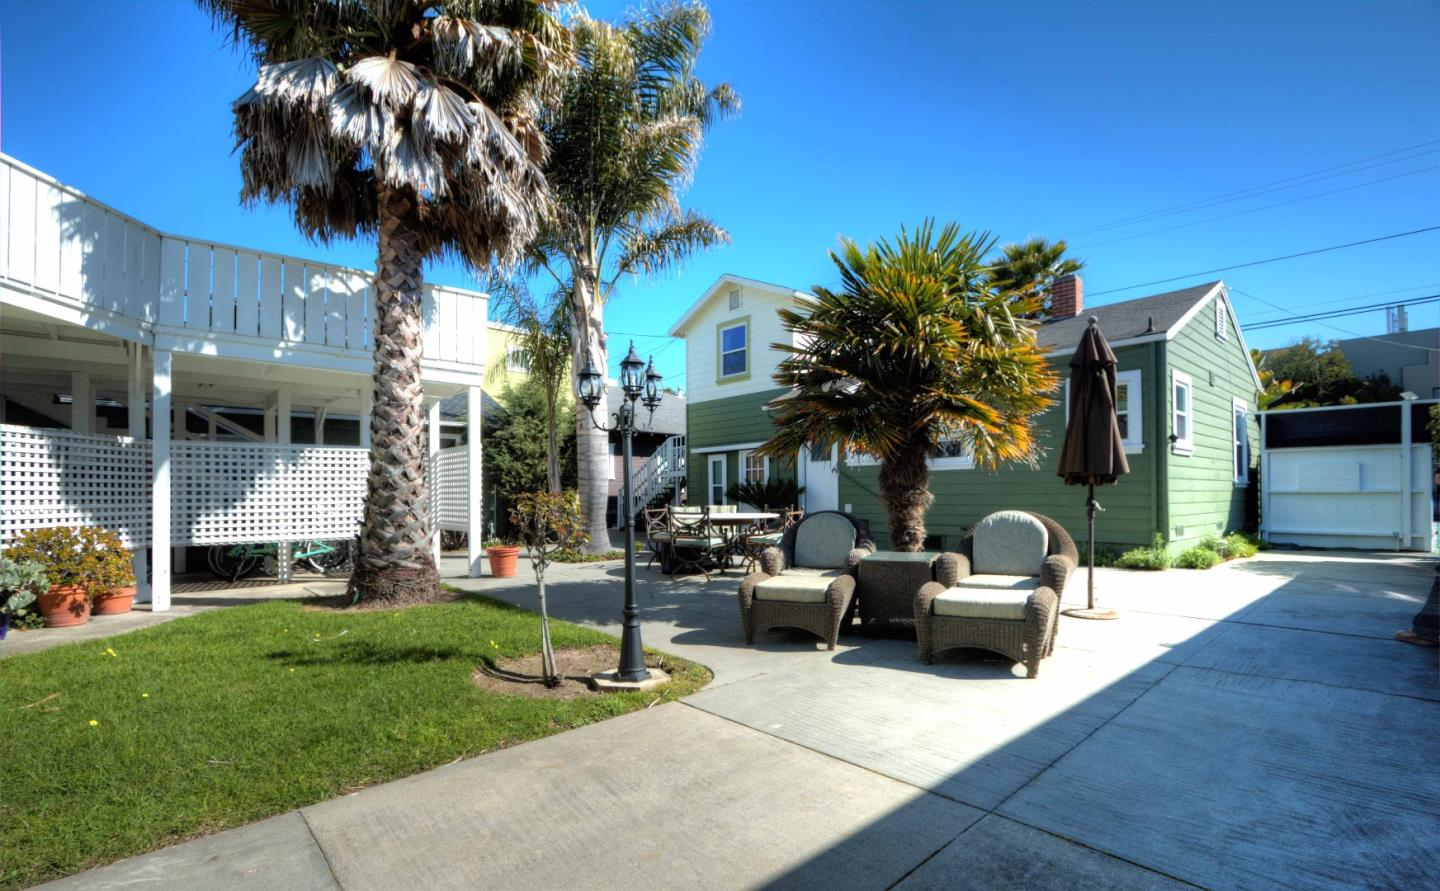 Casa Unifamiliar por un Venta en 225-241 7th Avenue Santa Cruz, California 95062 Estados Unidos